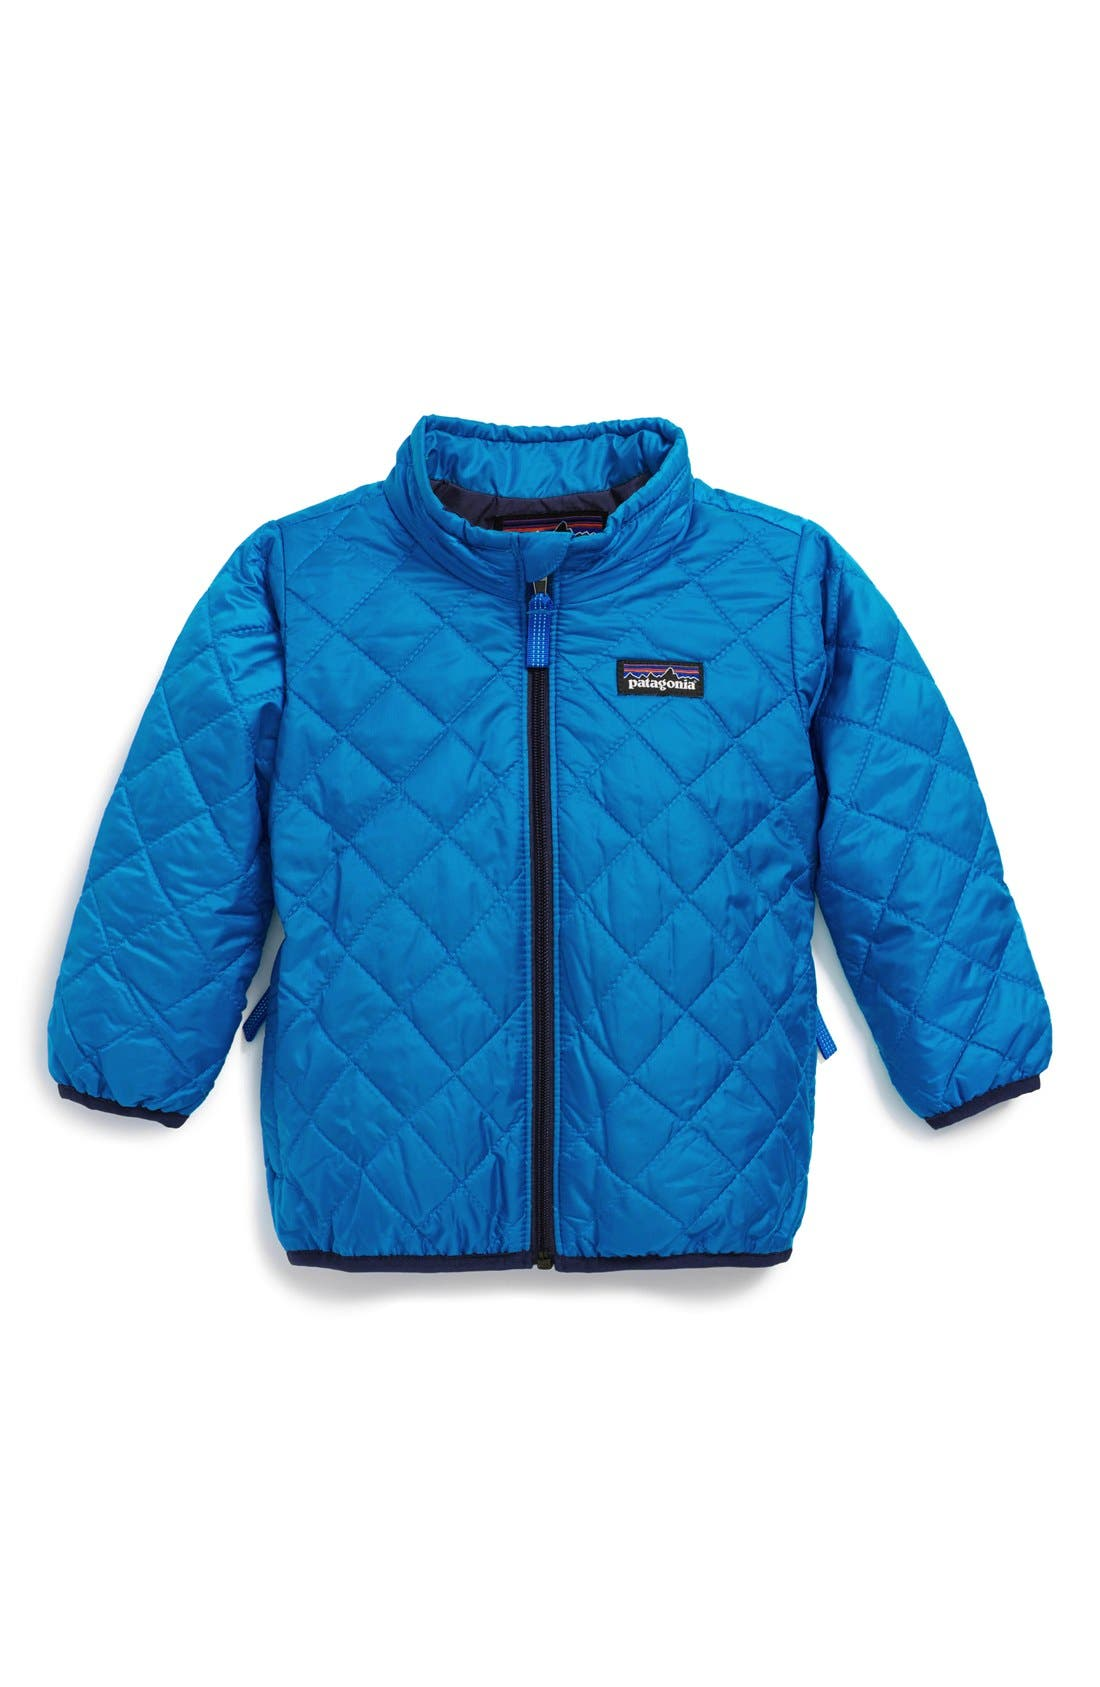 Main Image - Patagonia 'Nano Puff' Wind Resistant Water Repellent Jacket (Toddler Boys)